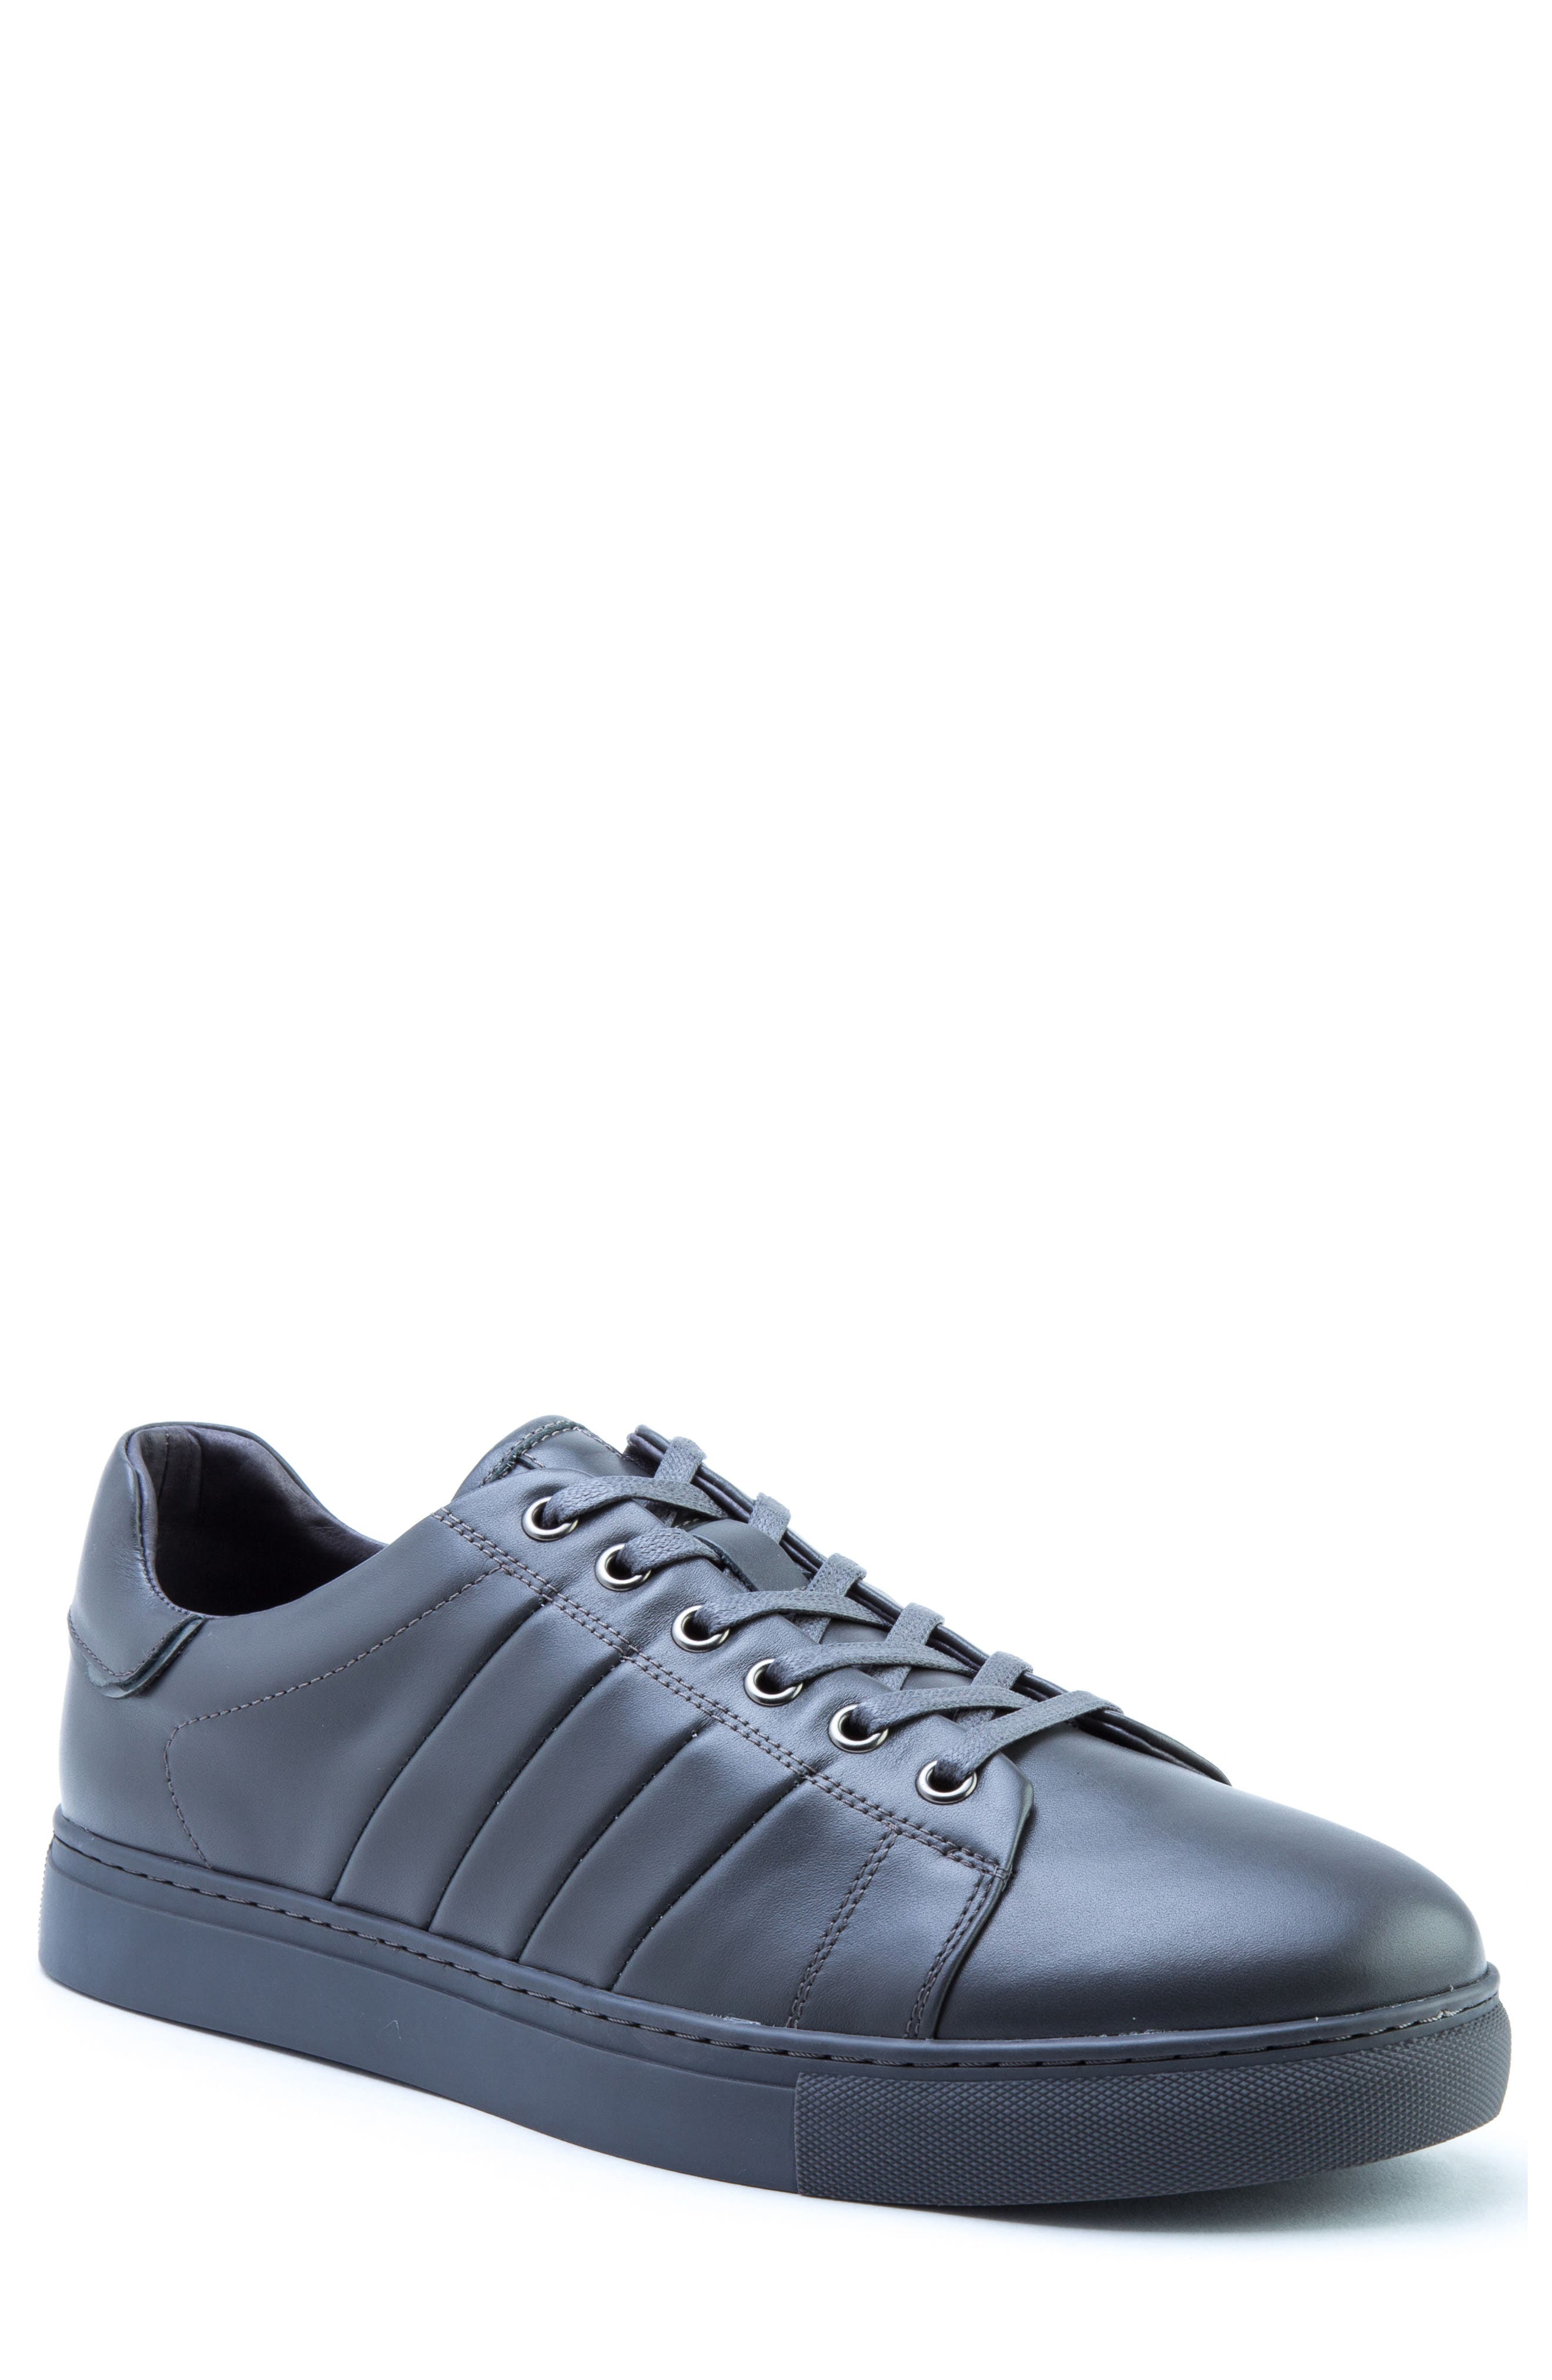 Mitchell Sneaker,                         Main,                         color, GREY LEATHER